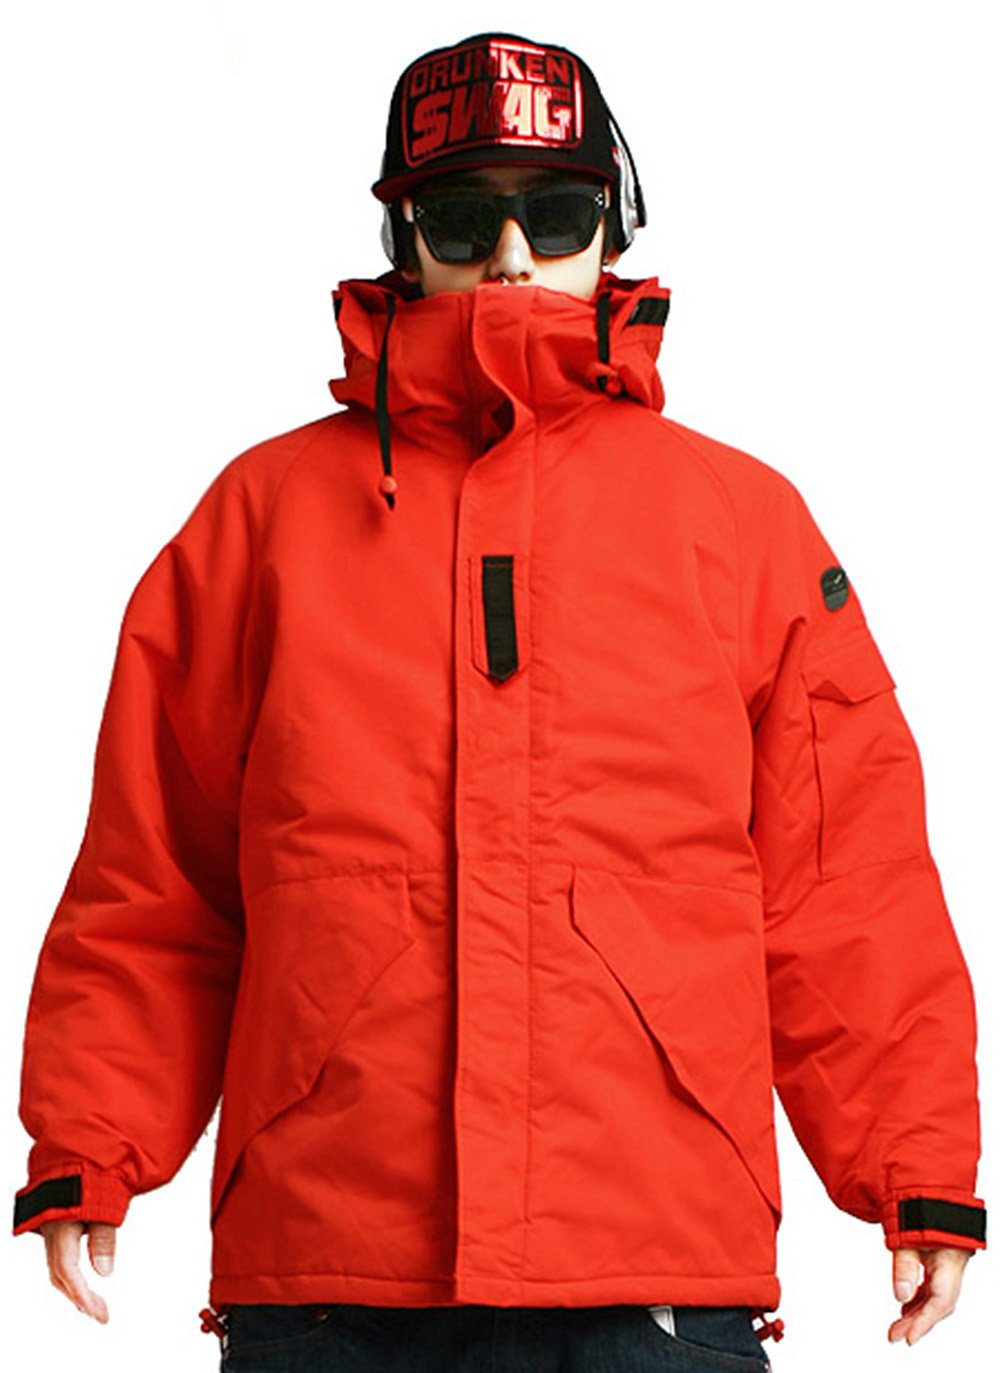 Mens SOUTH PLAY Waterproof Ski SnowBoard Wear Jacket Jumper SOLID ORANGE